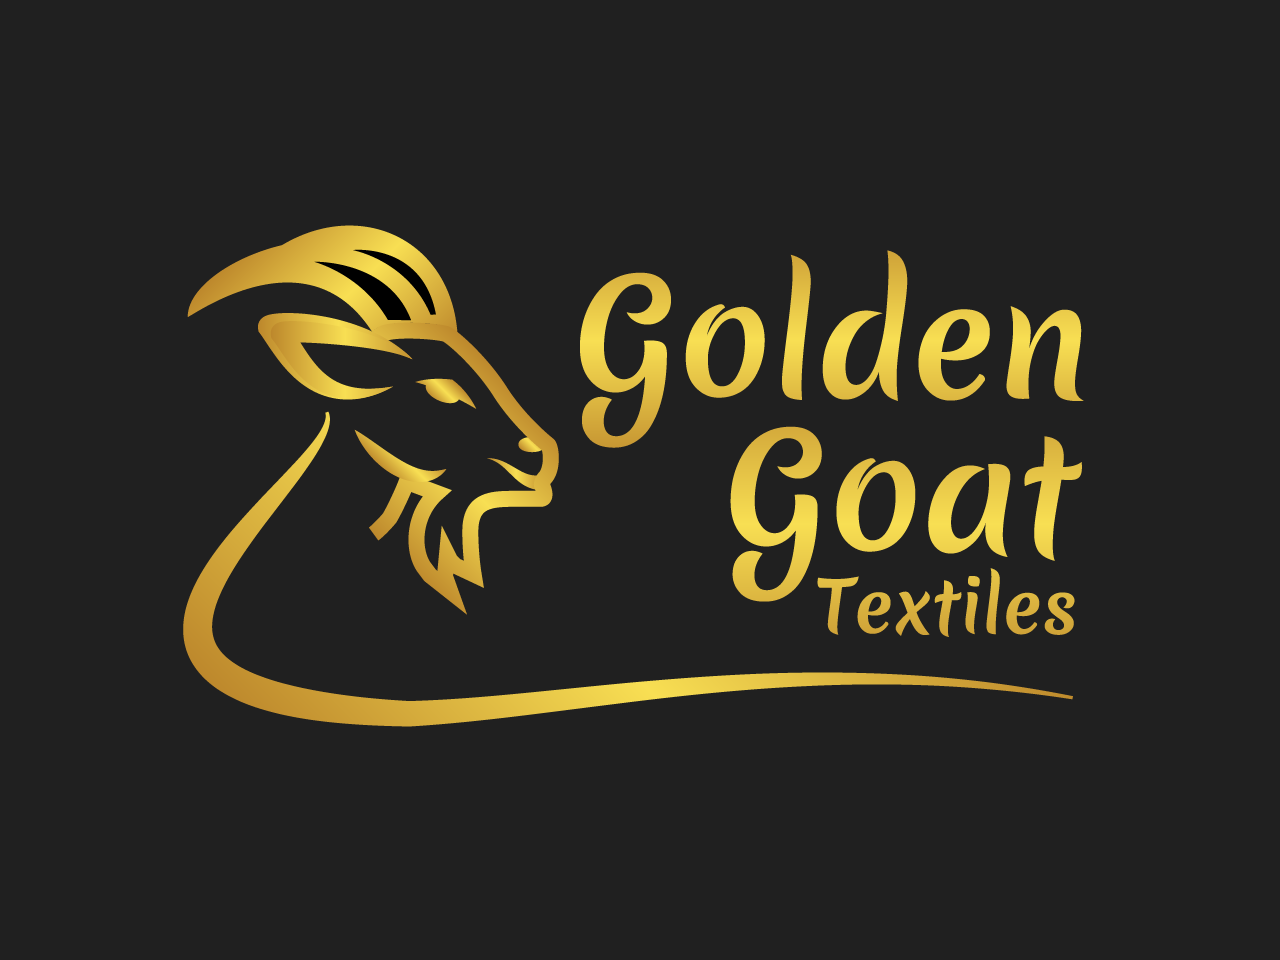 Golden Goat Logo Redesign